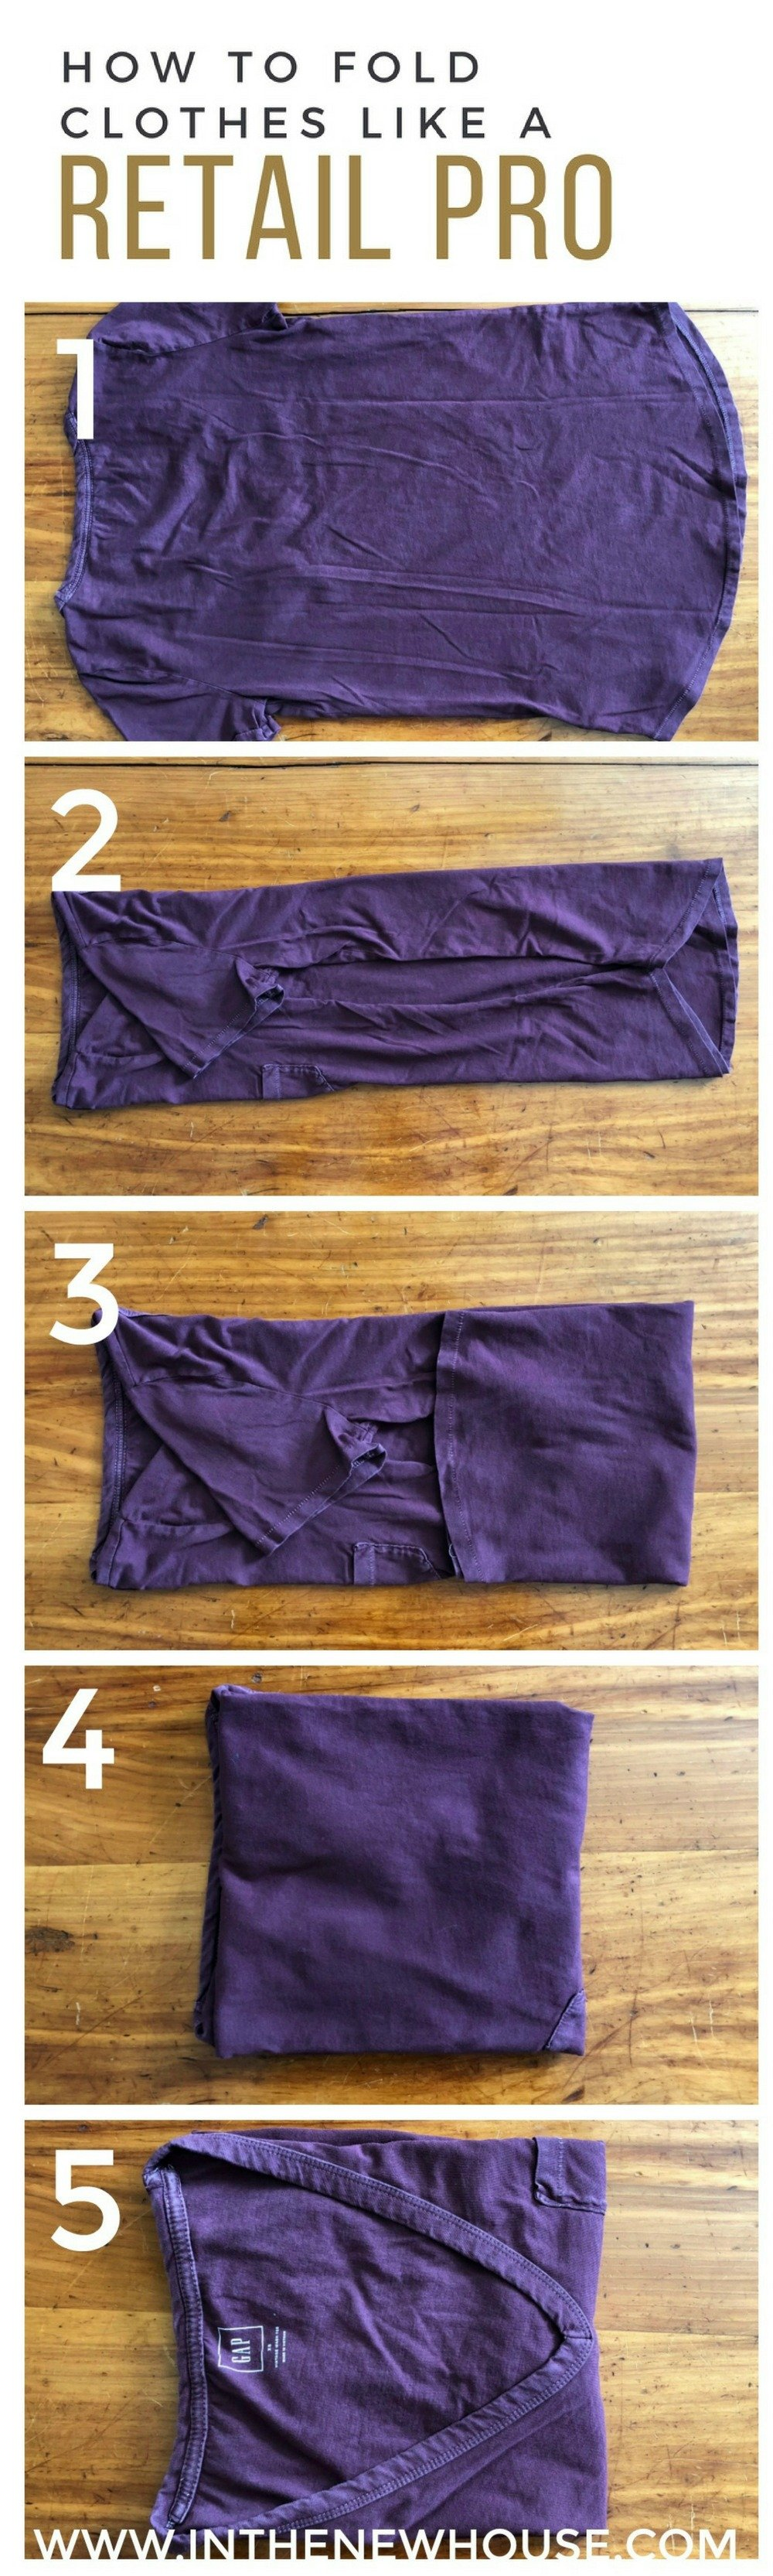 click through for more tips on folding your clothes